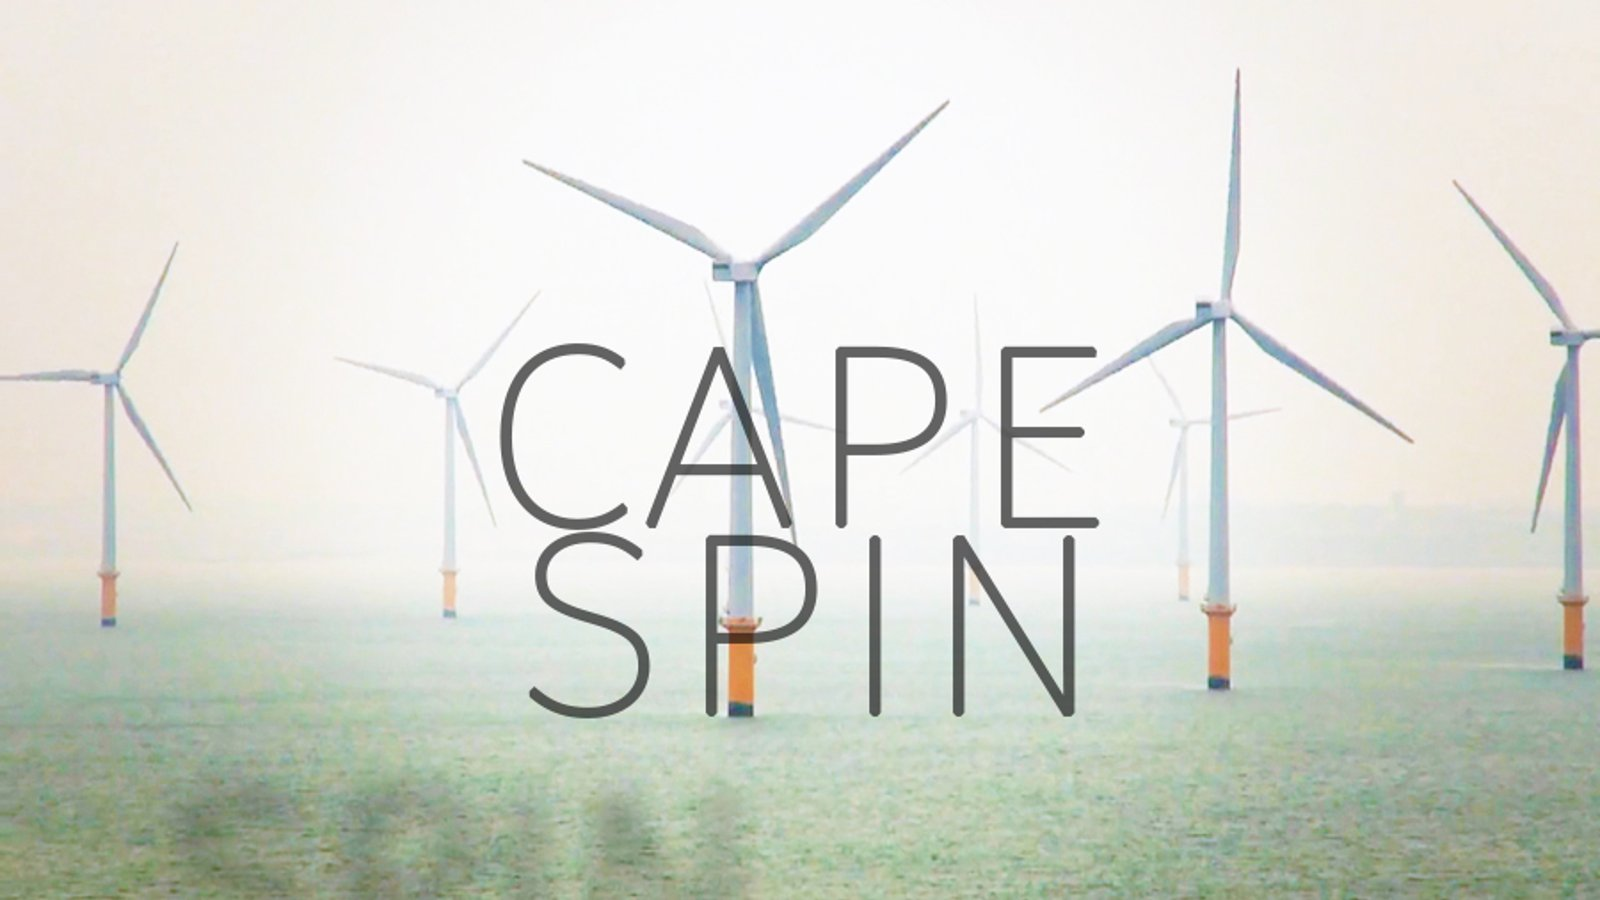 Cape Spin! - An American Power Struggle